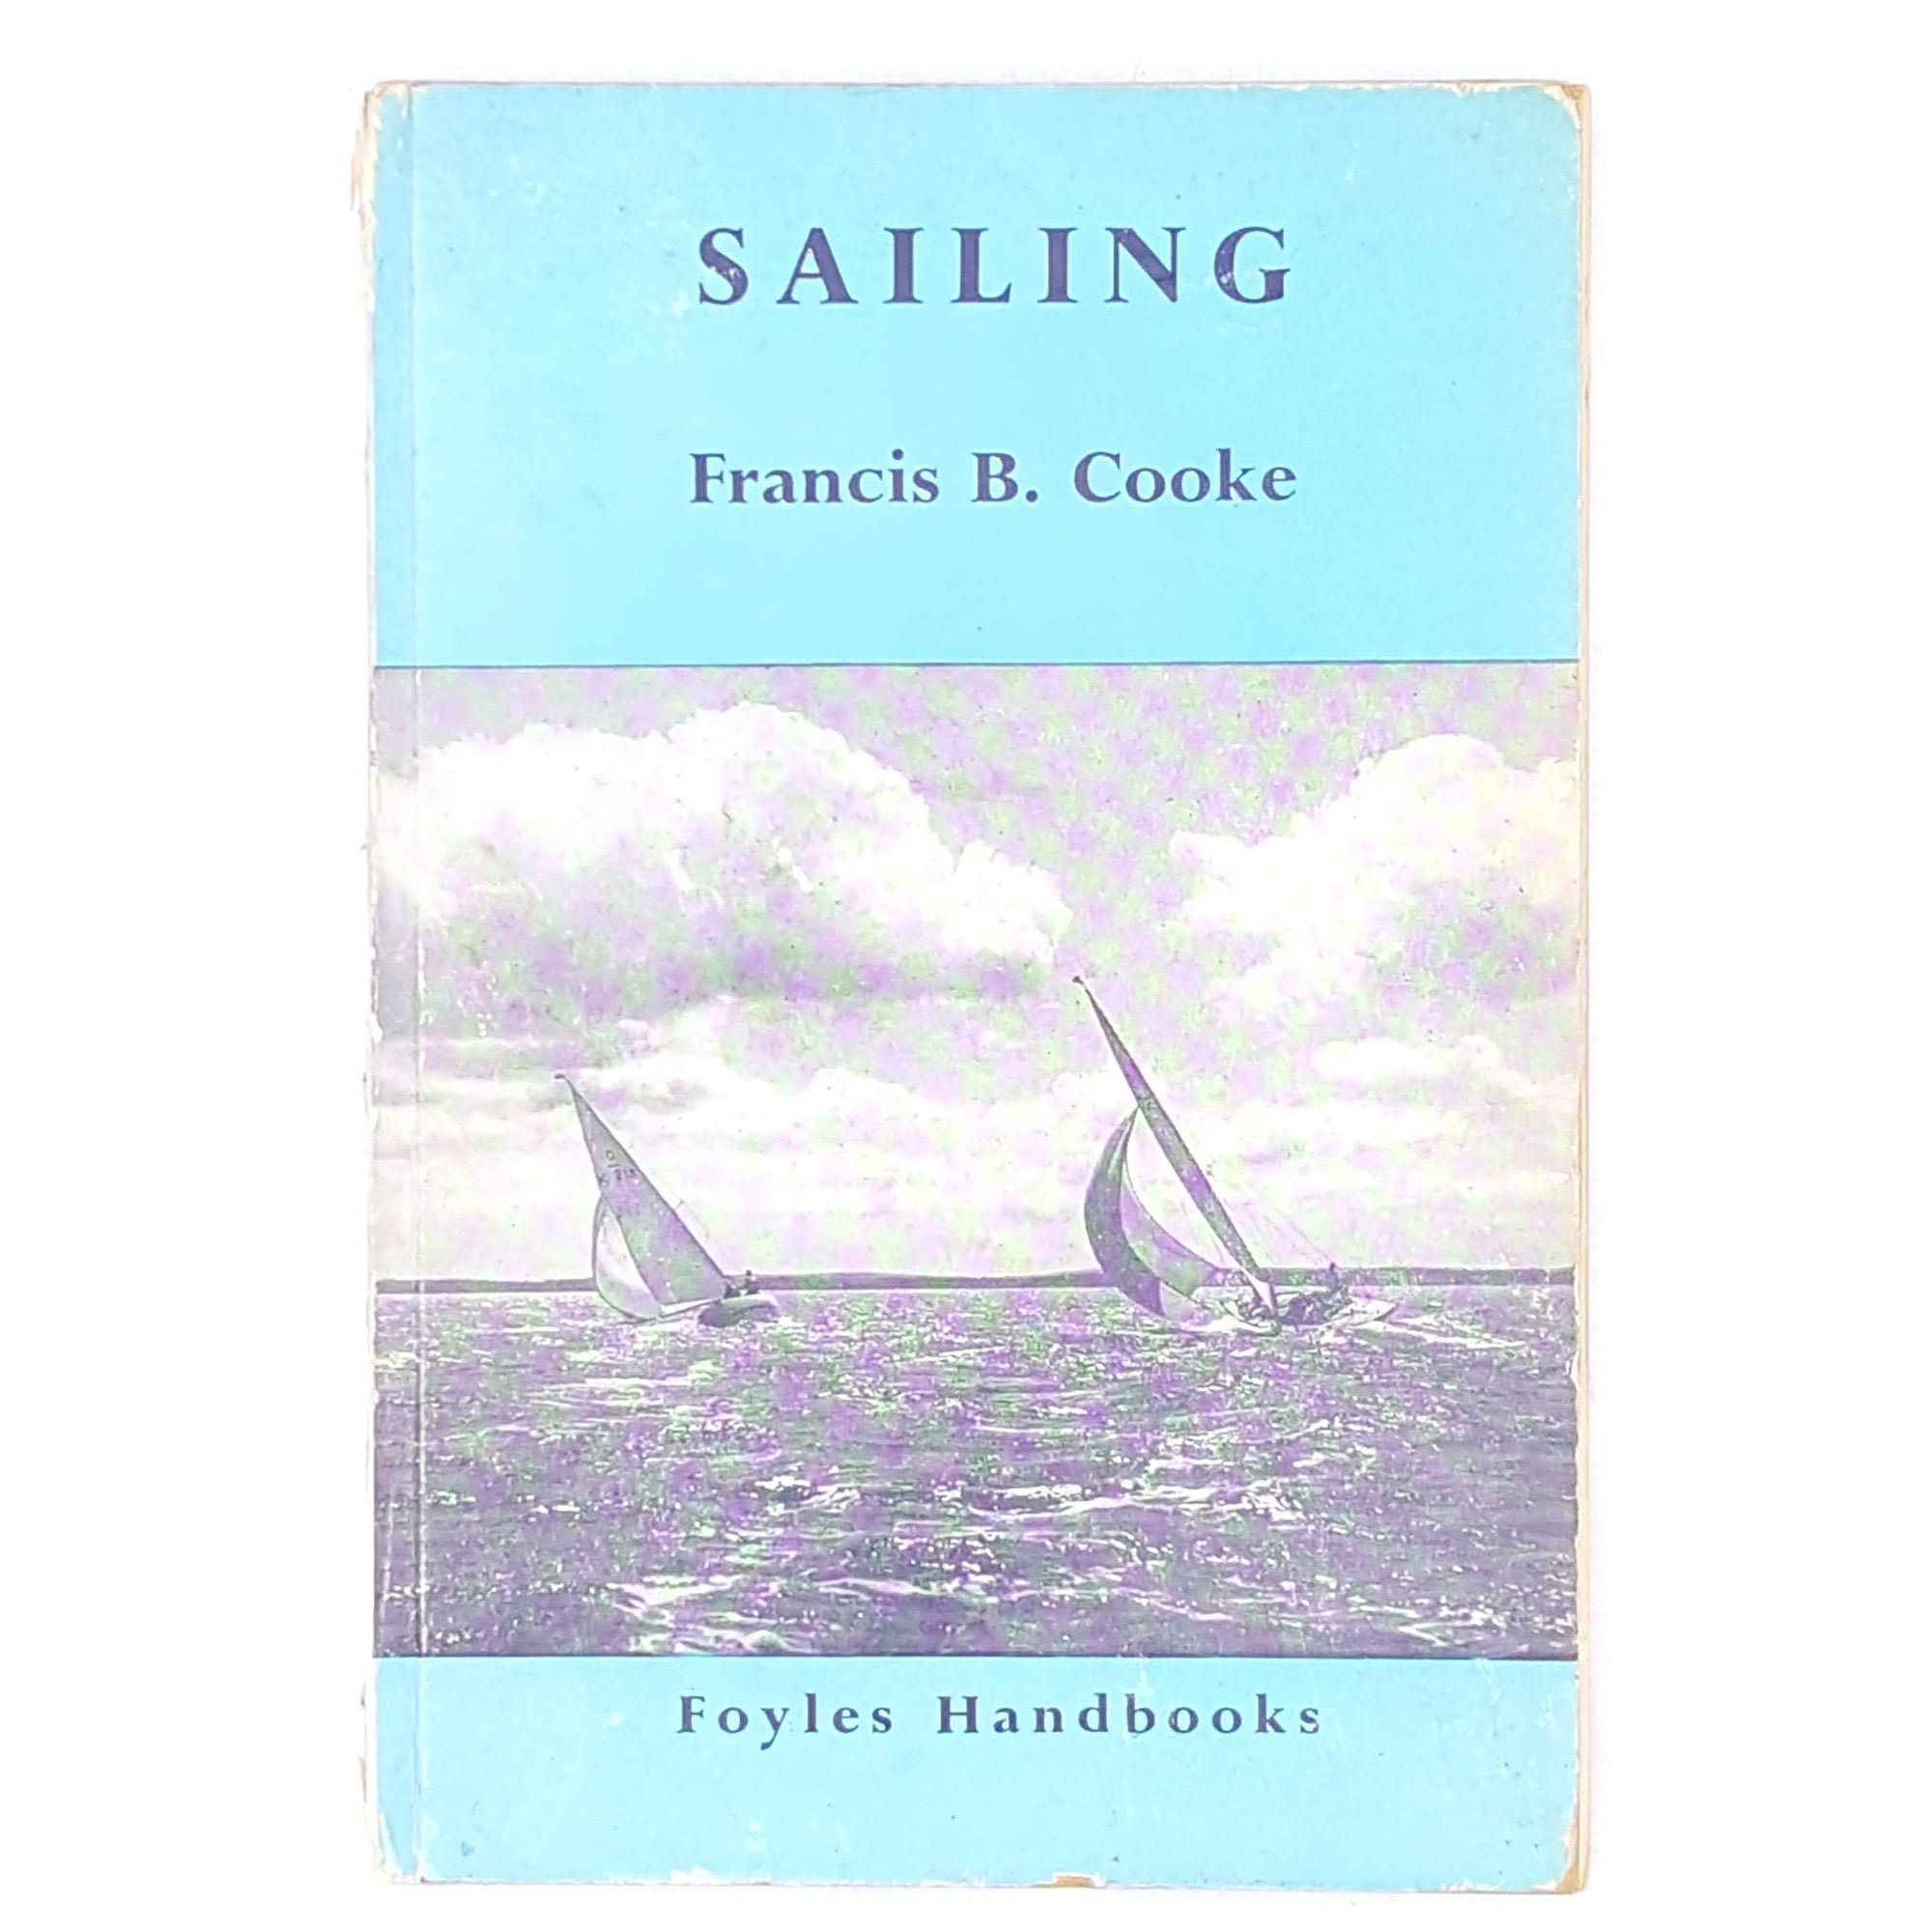 sailing-decorative-vintage-classic-country-house-library-patterned-thrift-sport-1951-blue-books-foyles-handbooks-old-antique-